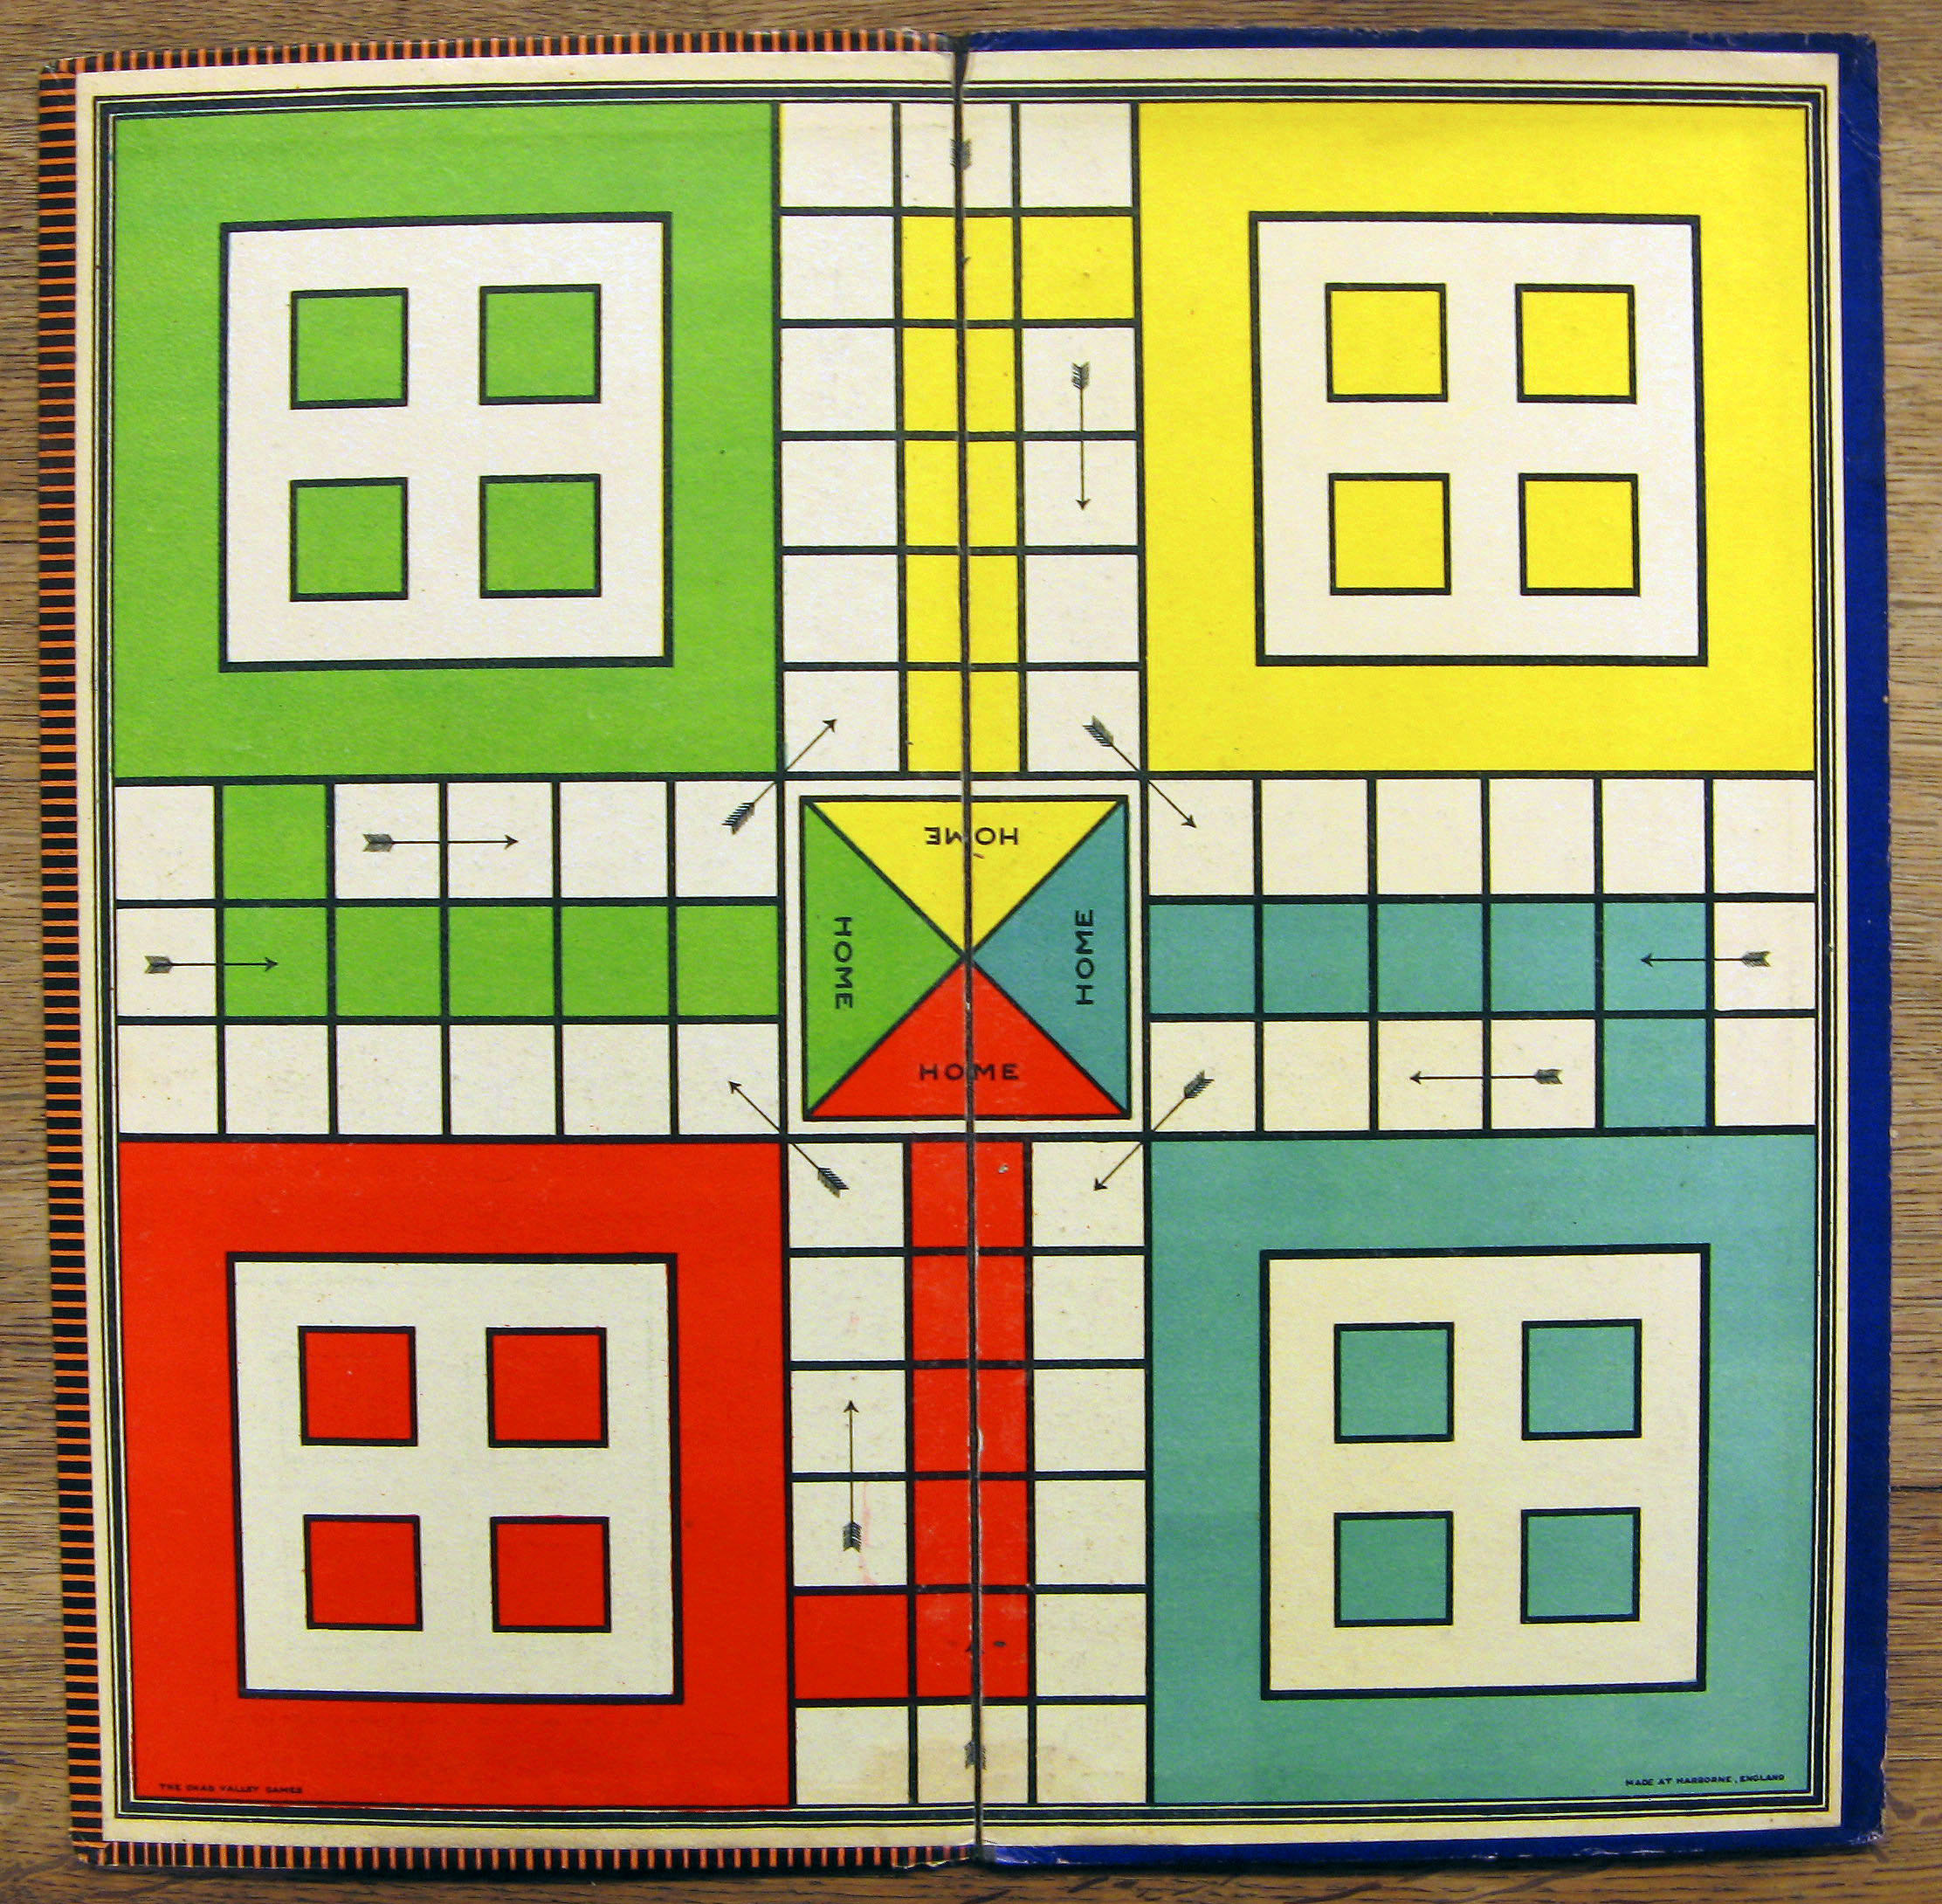 Ludo board game online shopping